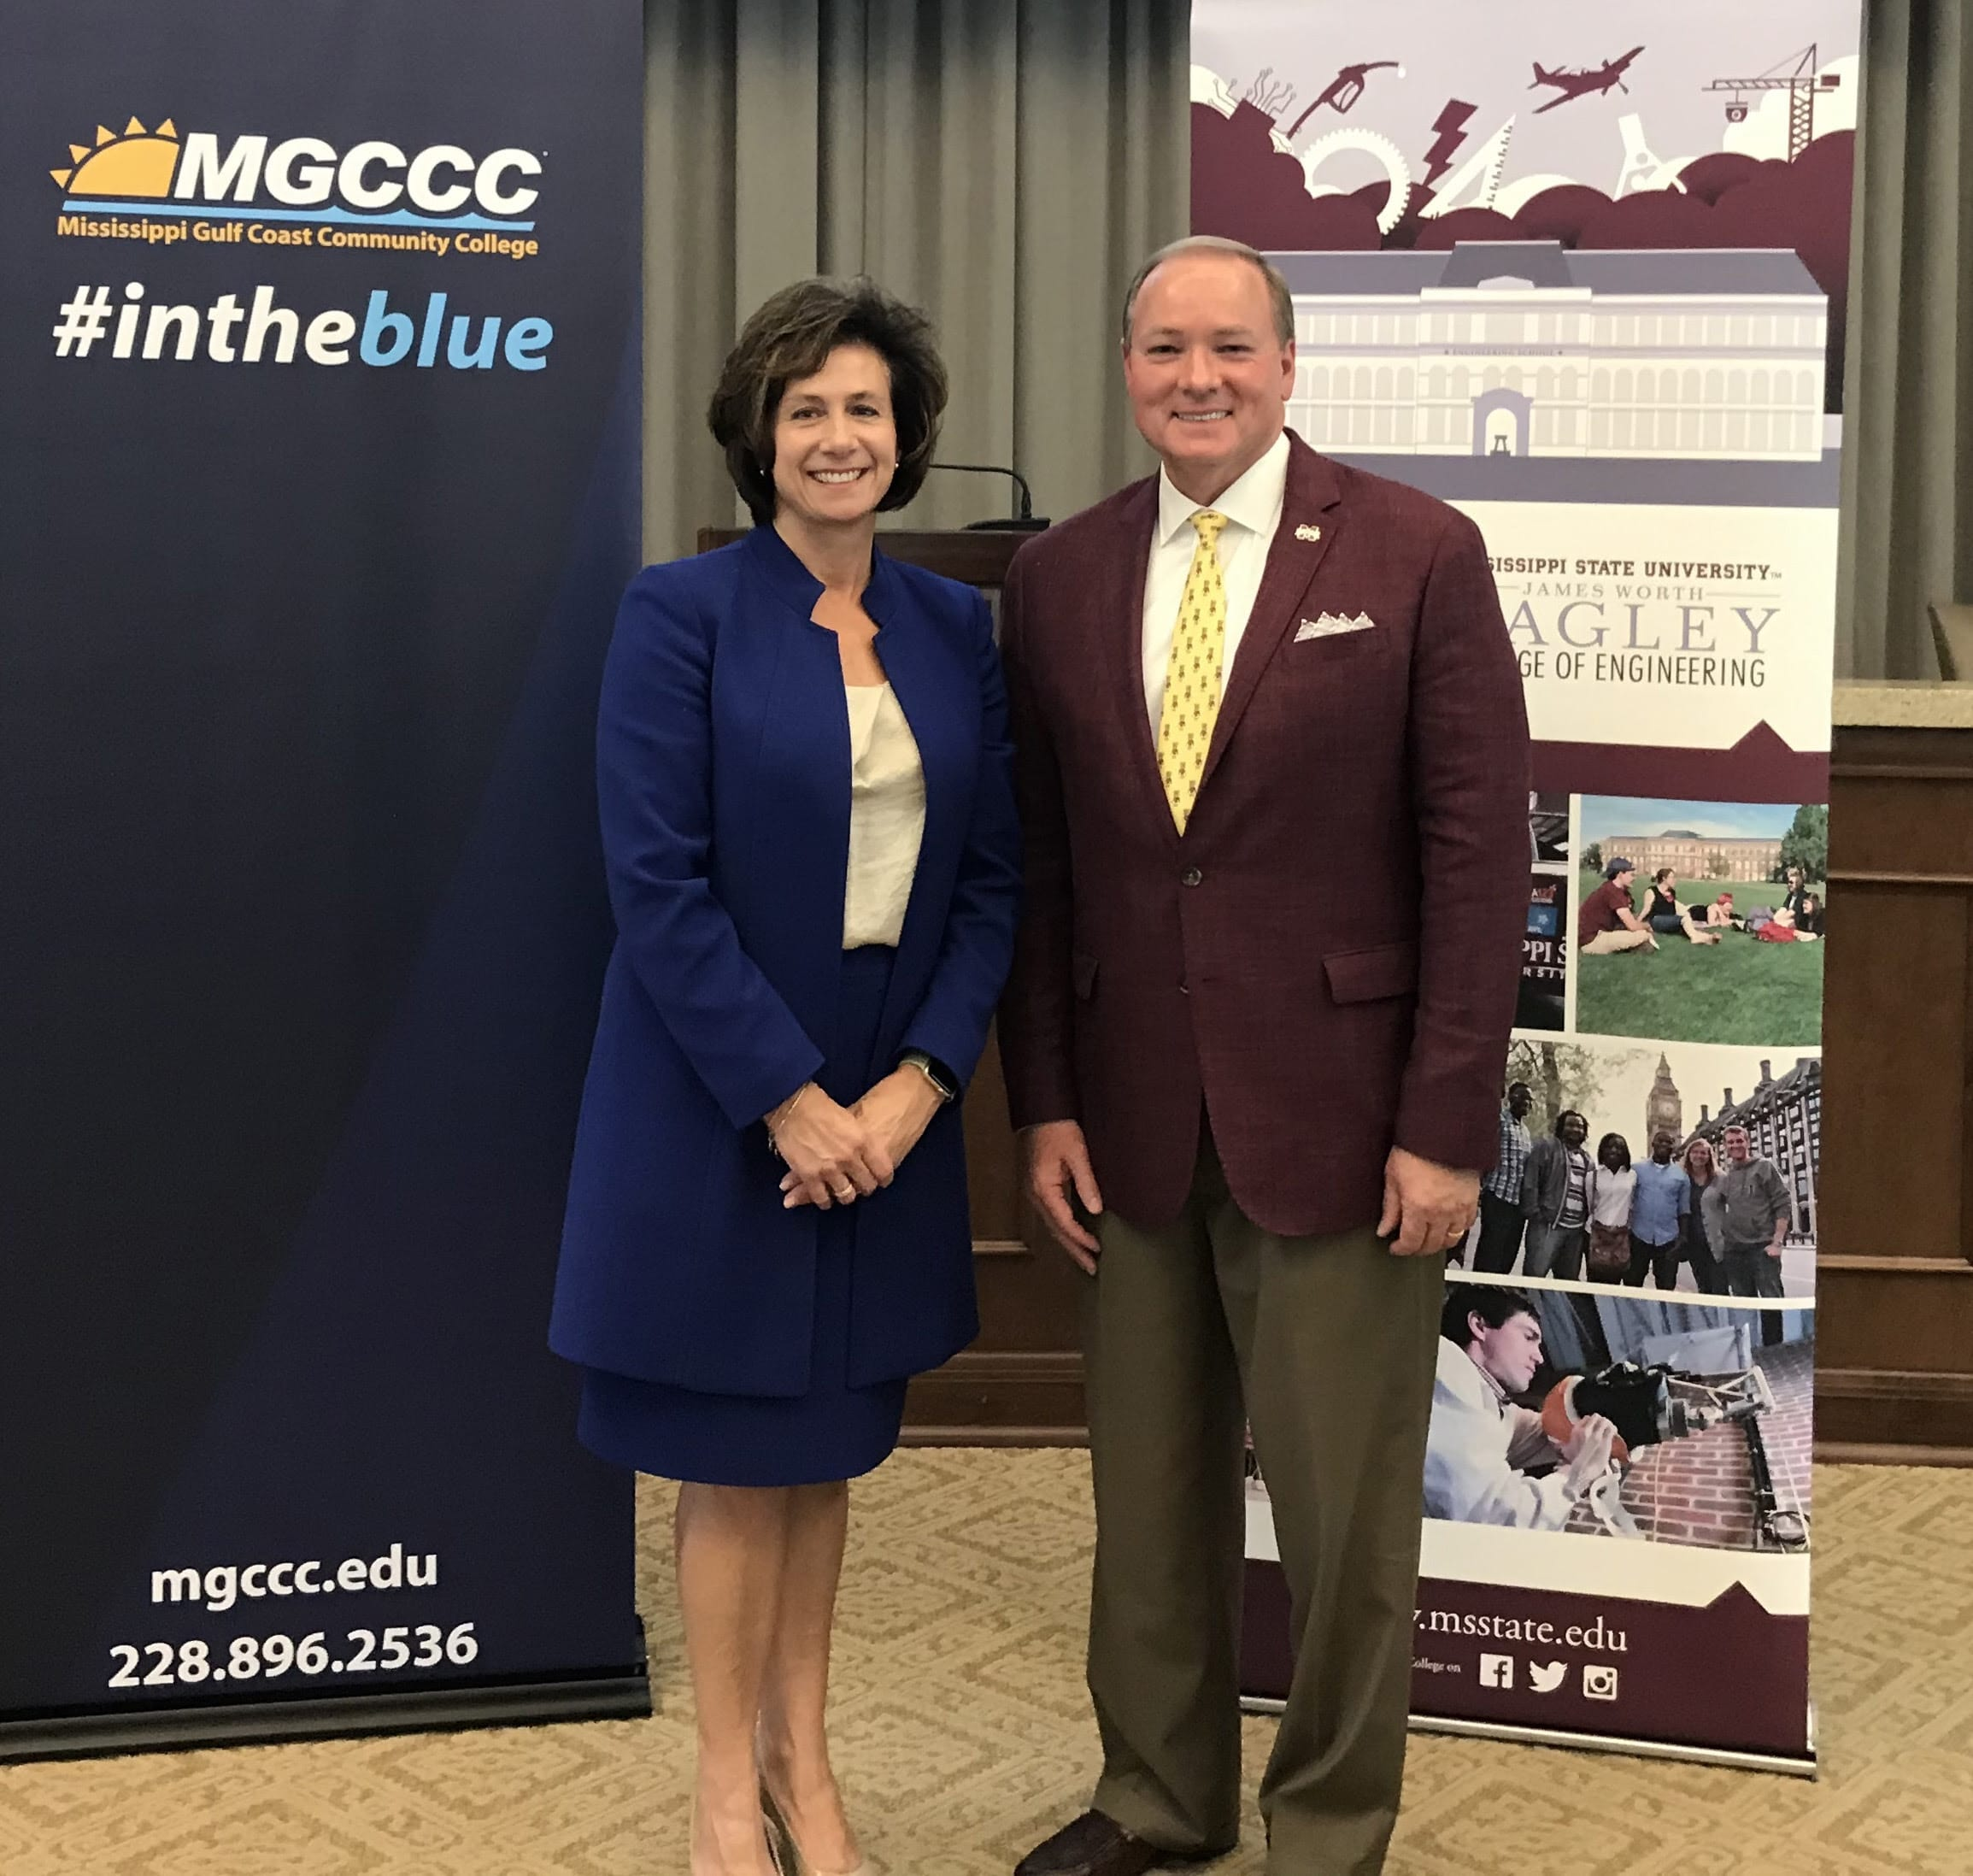 MSU President Mark E. Keenum and MGCCC President Mary S. Graham